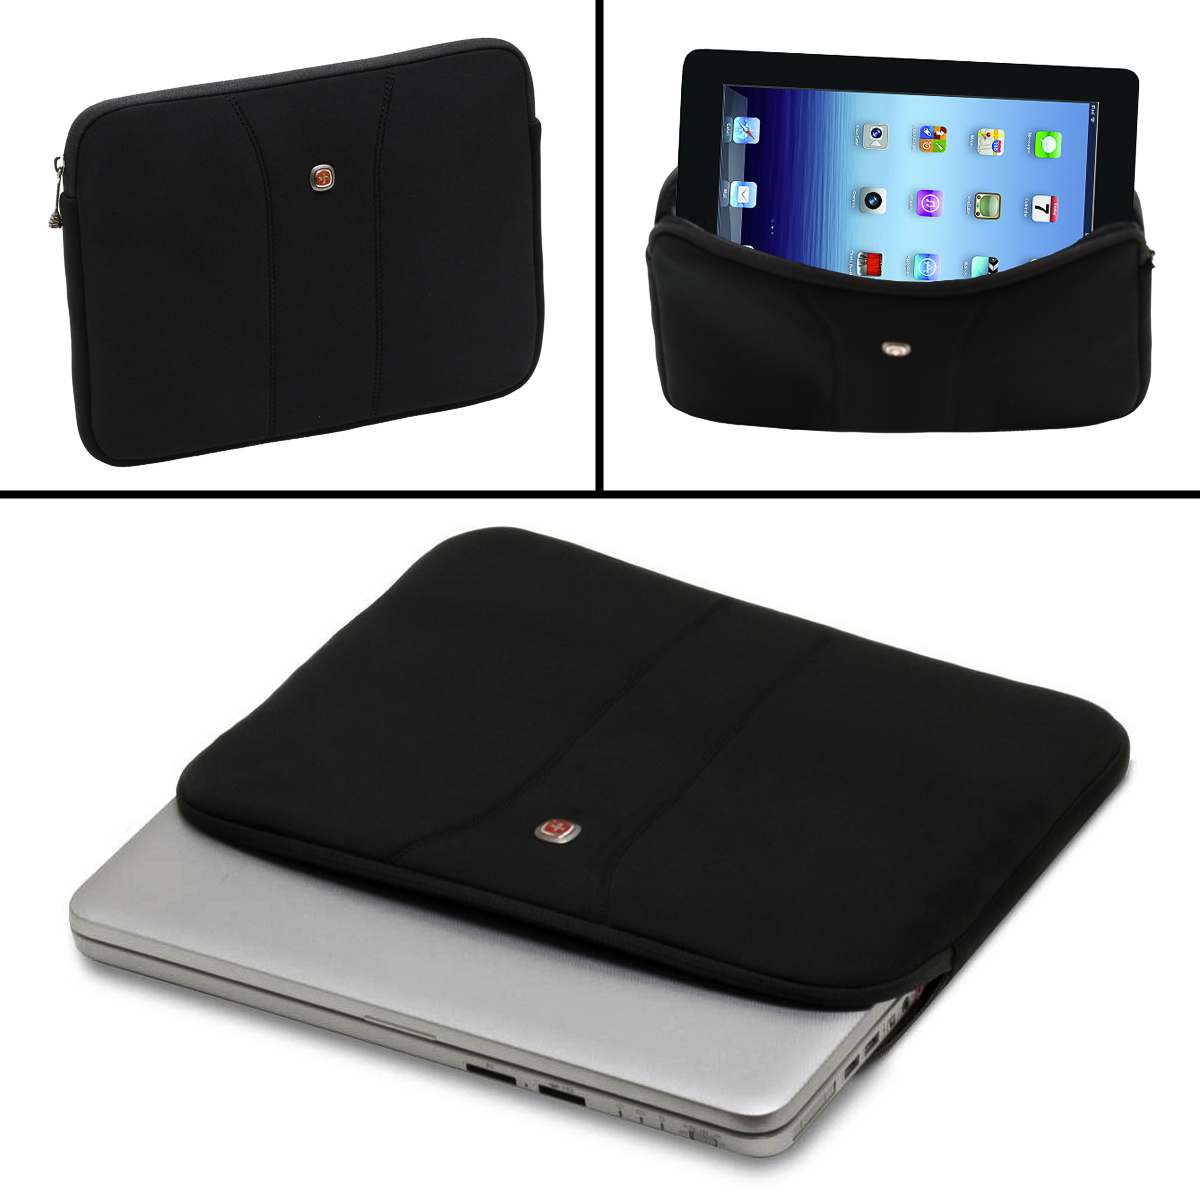 Wenger 10 Legacy Netbook Sleeve Tablet iPad Travel Computer Padded Protection